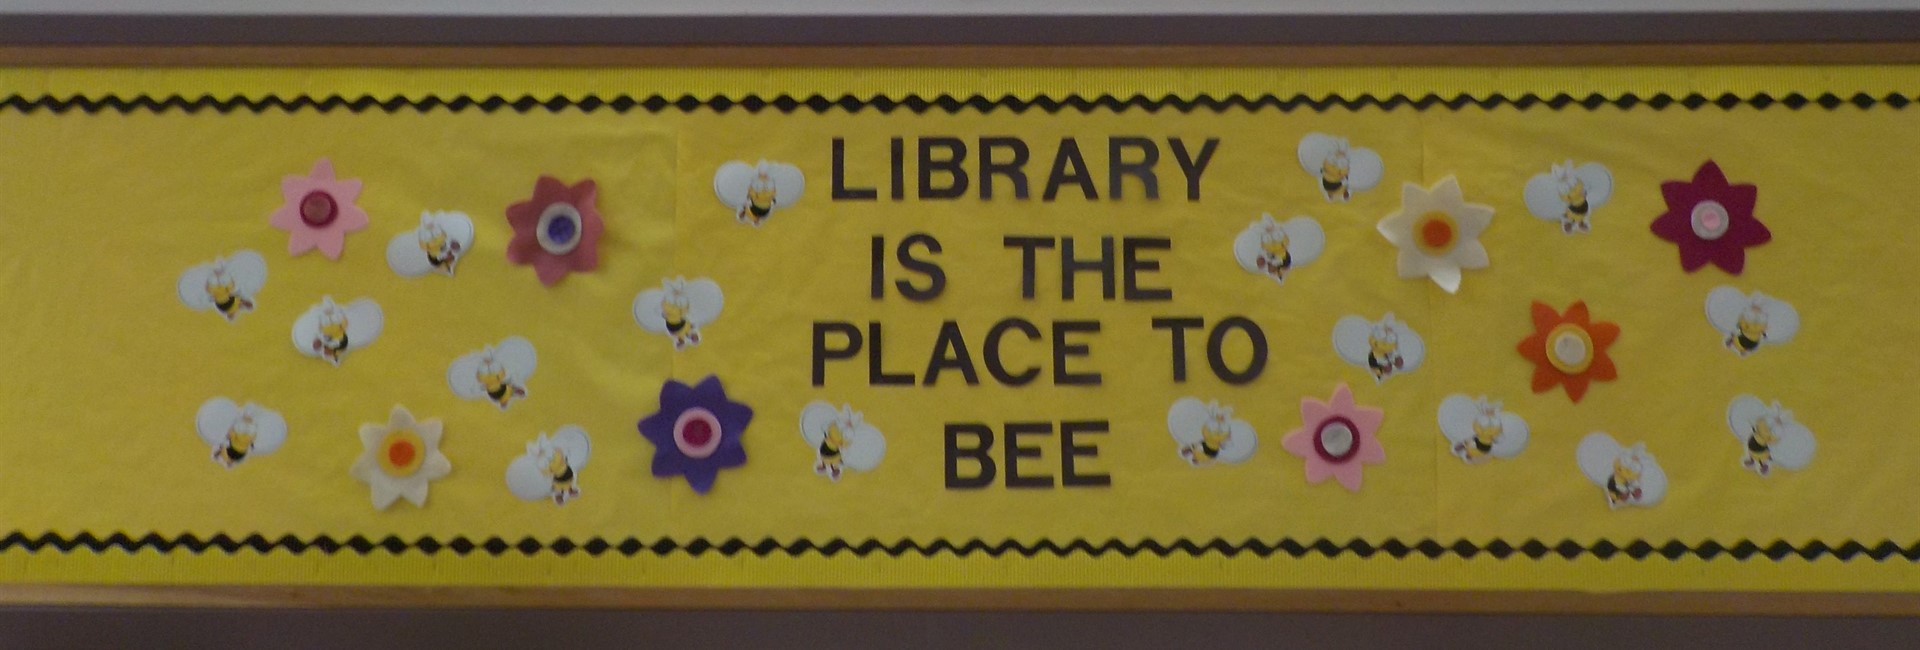 Library Bee